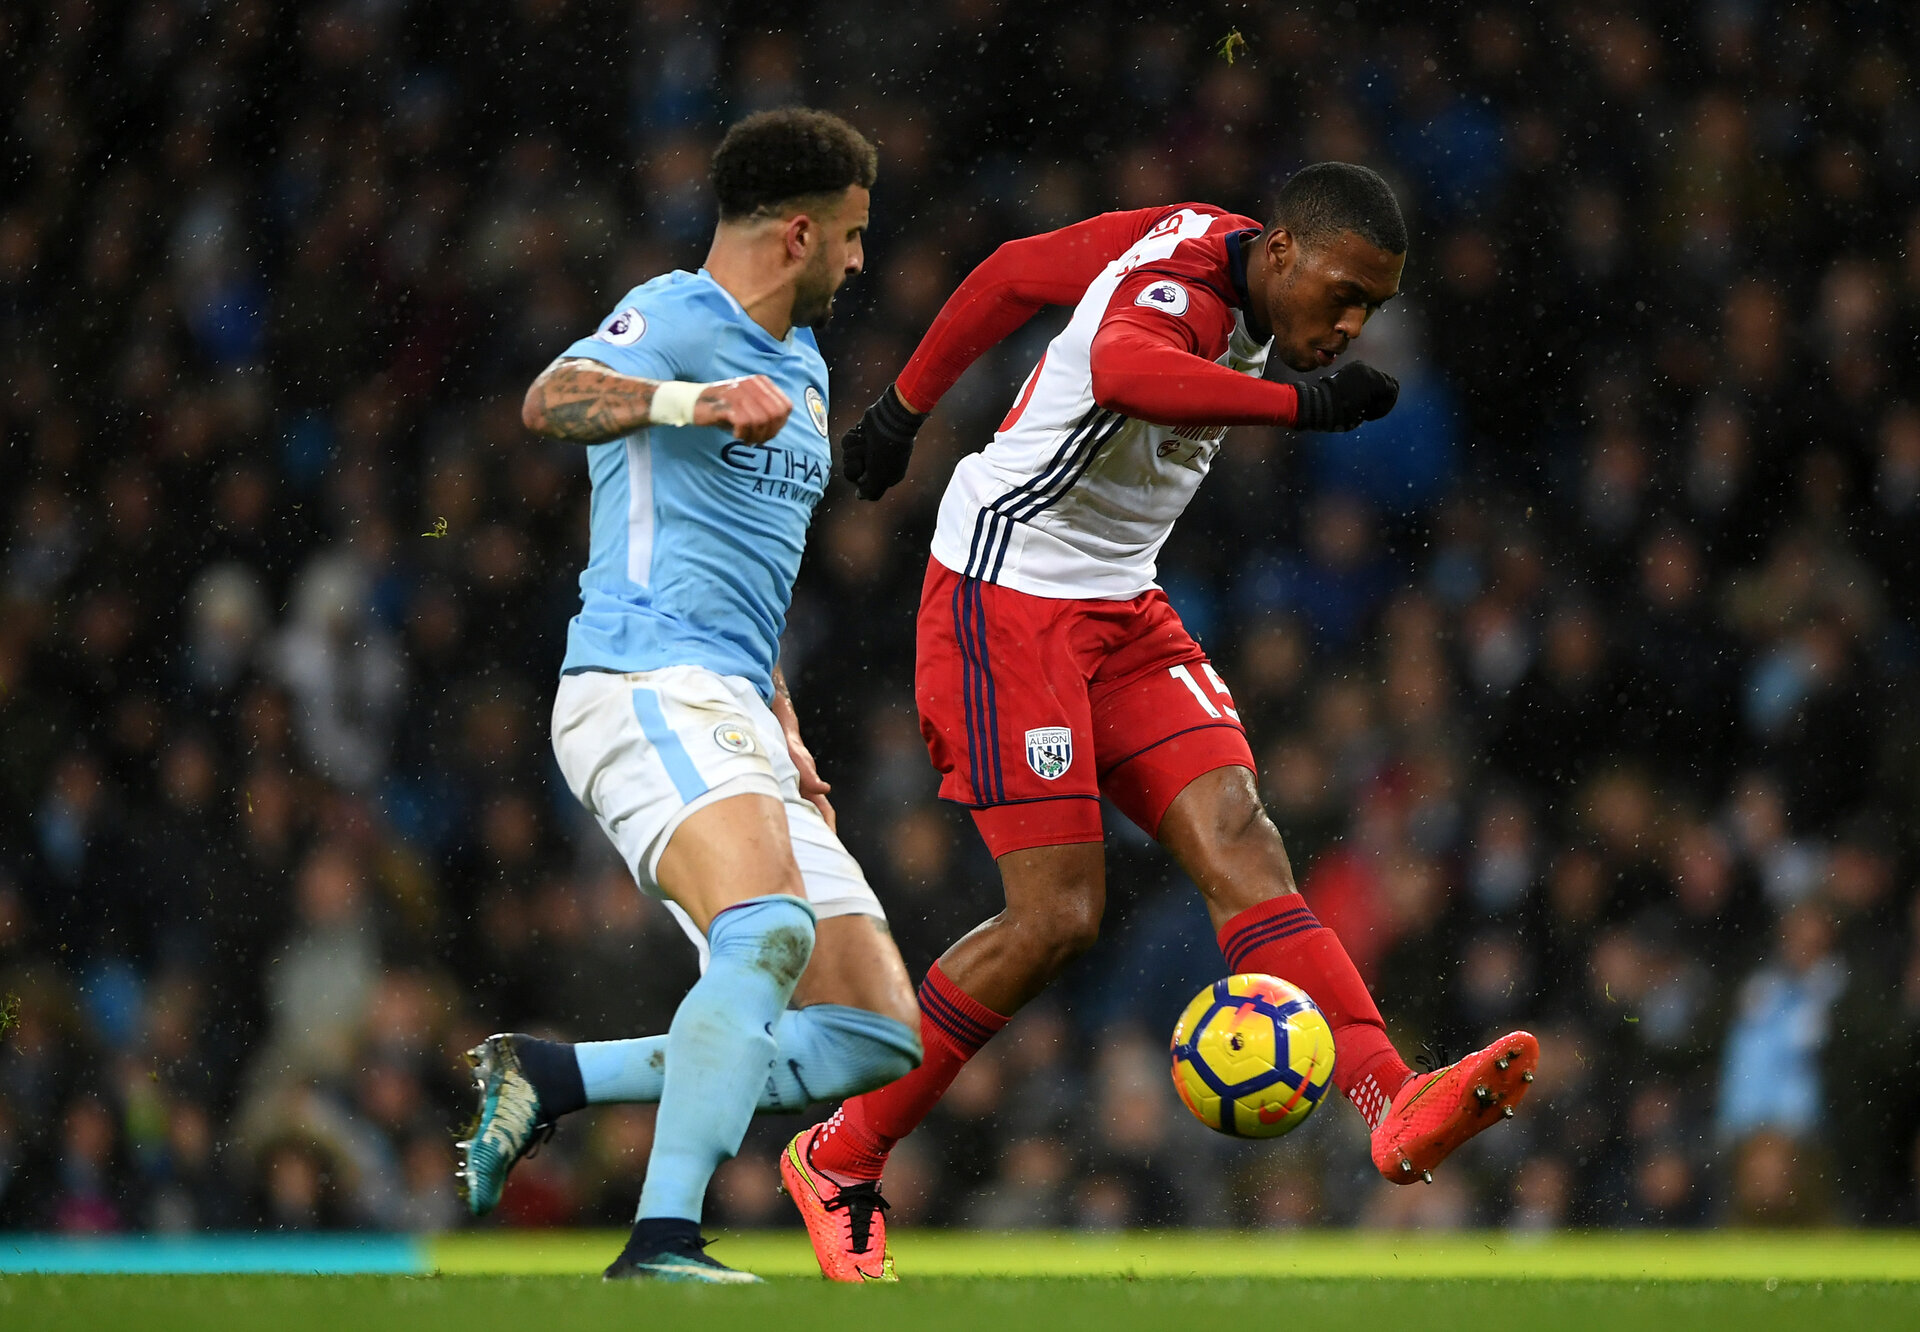 MANCHESTER, ENGLAND - JANUARY 31:  Daniel Sturridge of West Bromwich Albion controls the ball under pressure from Kyle Walker of Manchester City  during the Premier League match between Manchester City and West Bromwich Albion at Etihad Stadium on January 31, 2018 in Manchester, England.  (Photo by Laurence Griffiths/Getty Images)